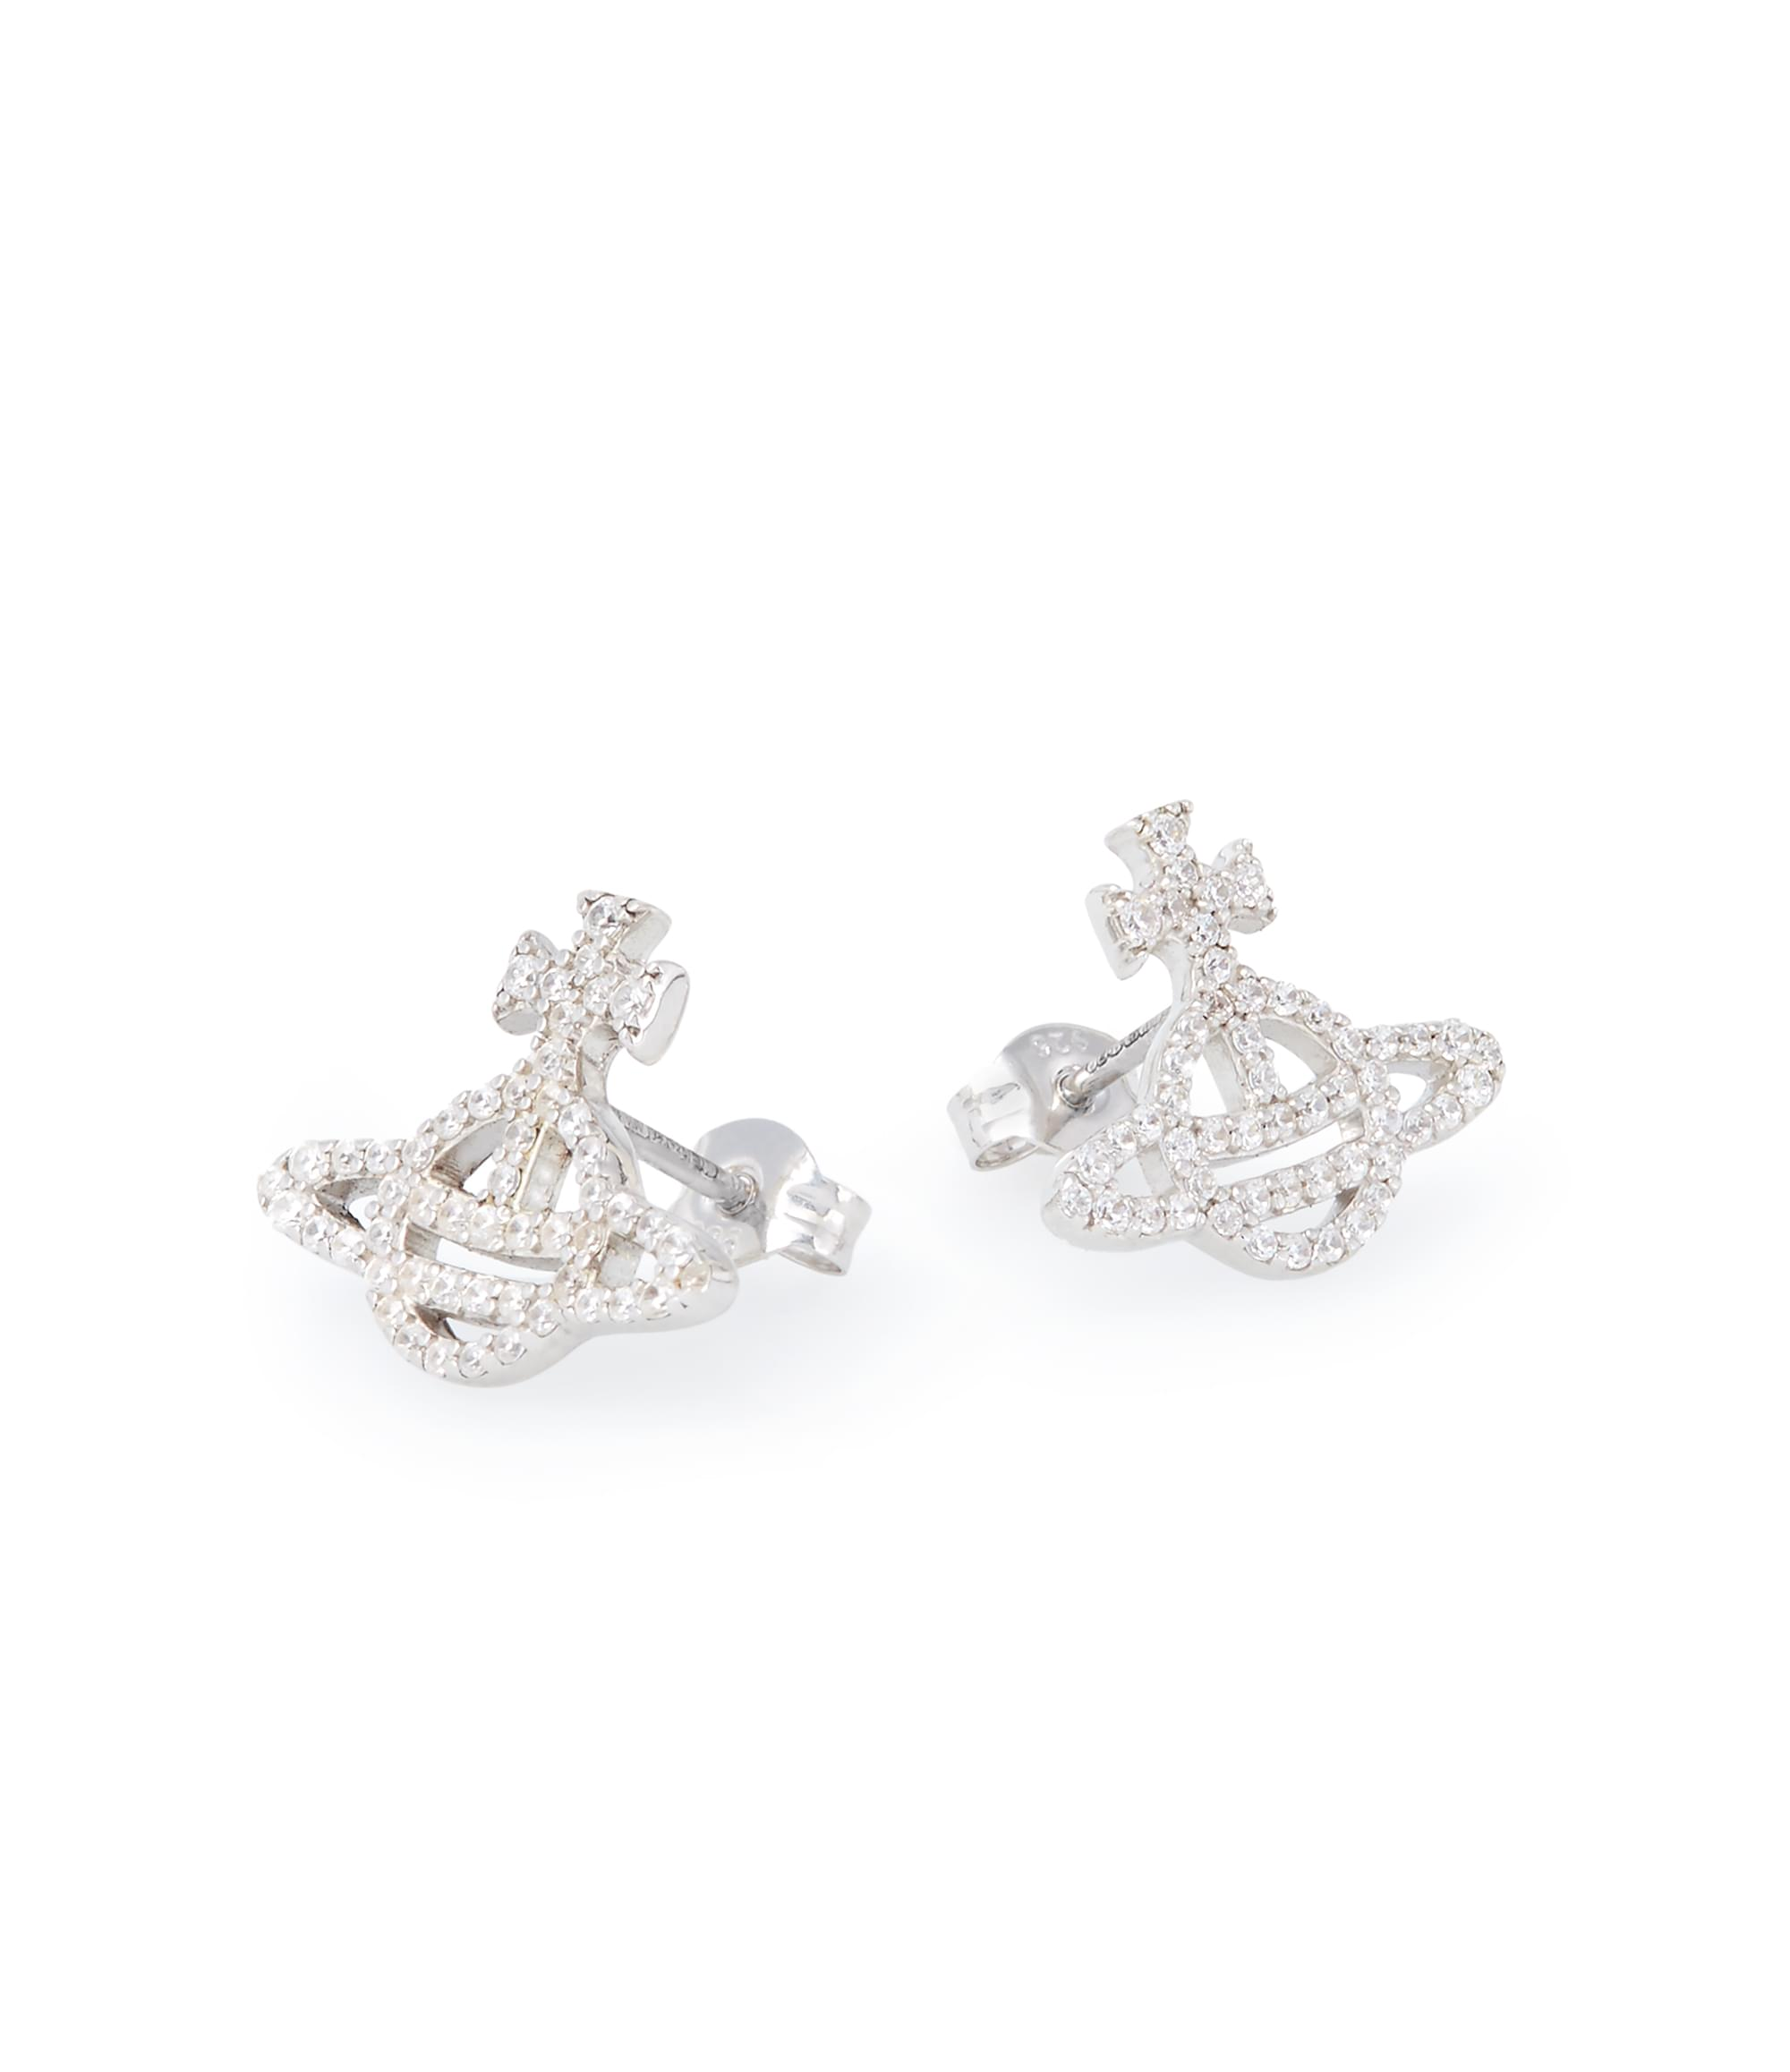 Vivienne Westwood Calliope Earrings